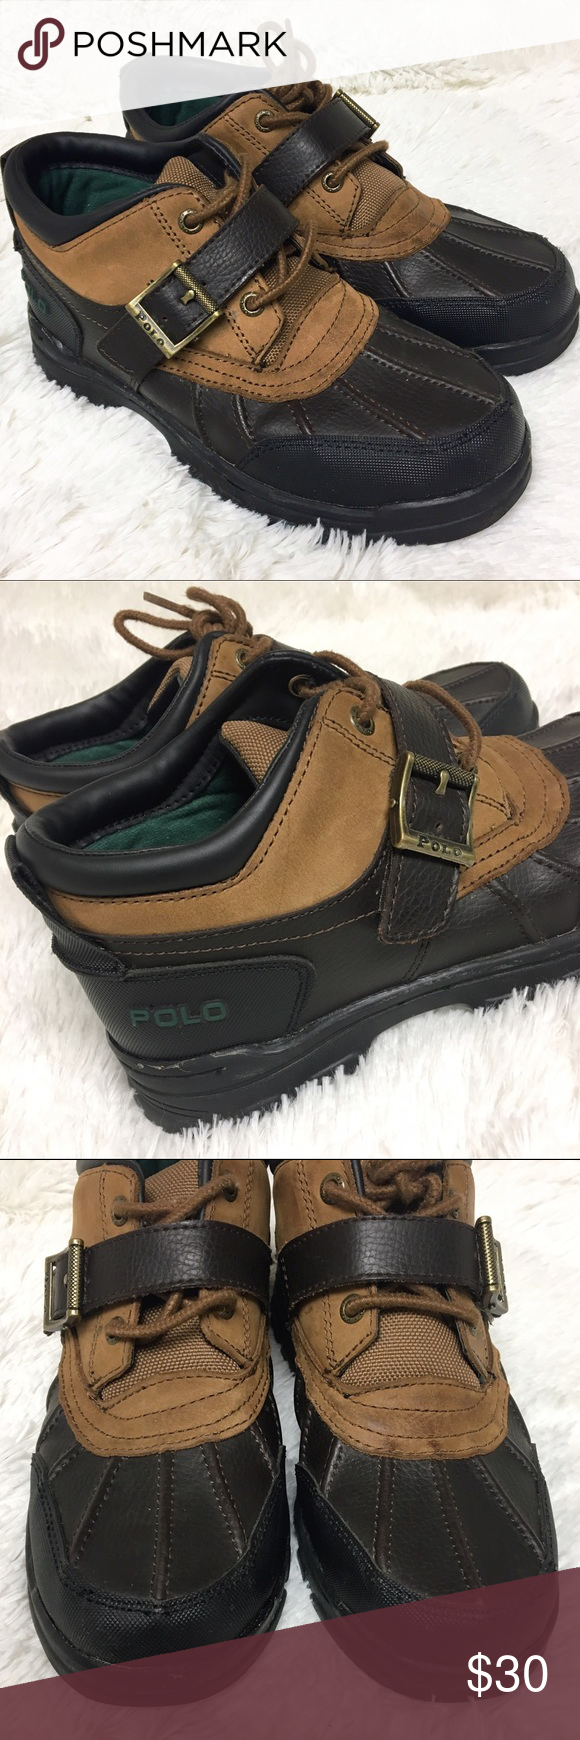 5ddd0302d90 Polo by Ralph Lauren Brown Leather Duck Boots Very good used ...